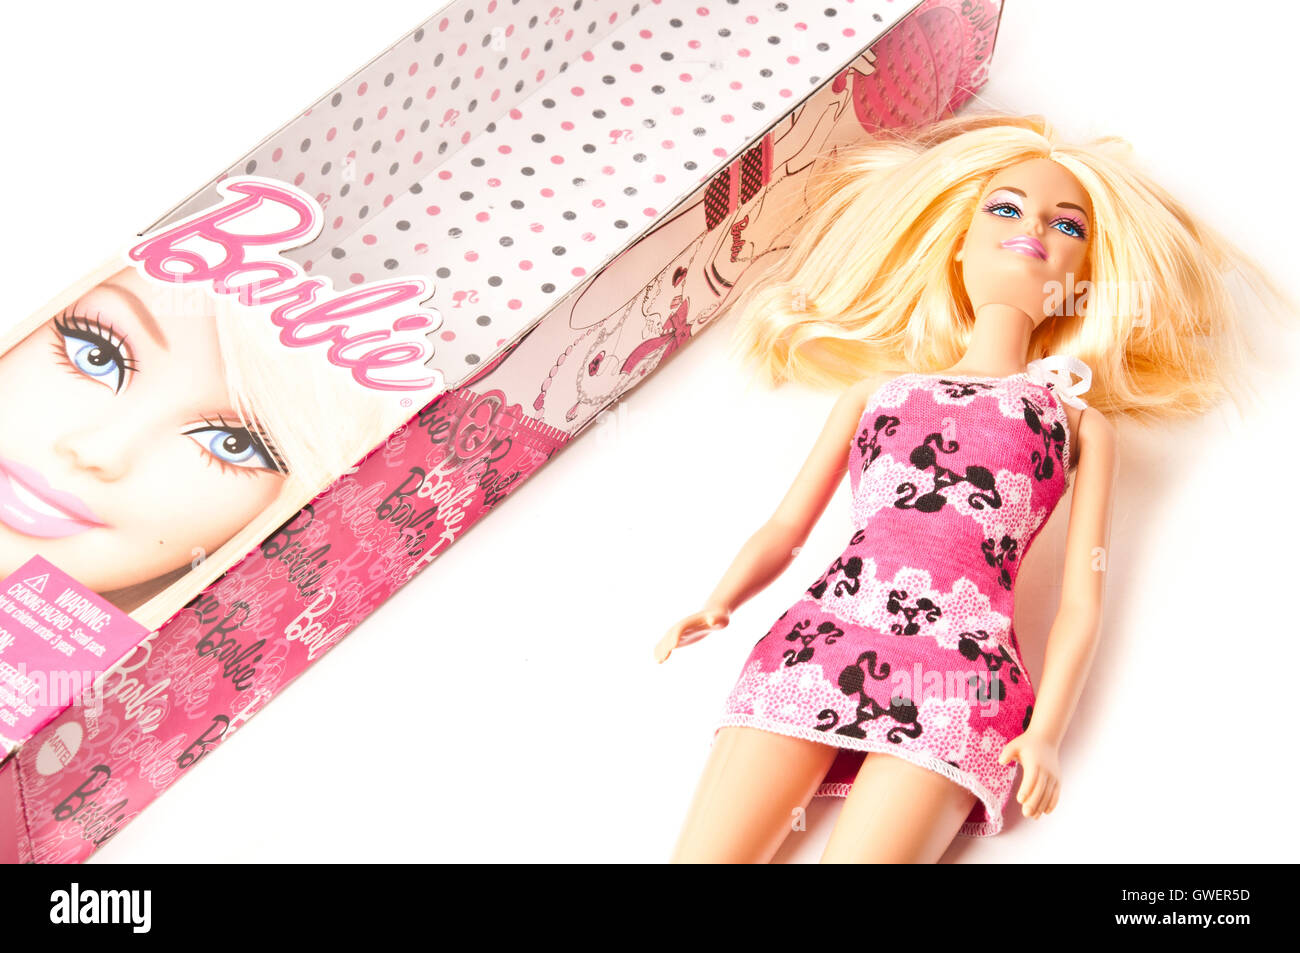 Barbie with box - Stock Image